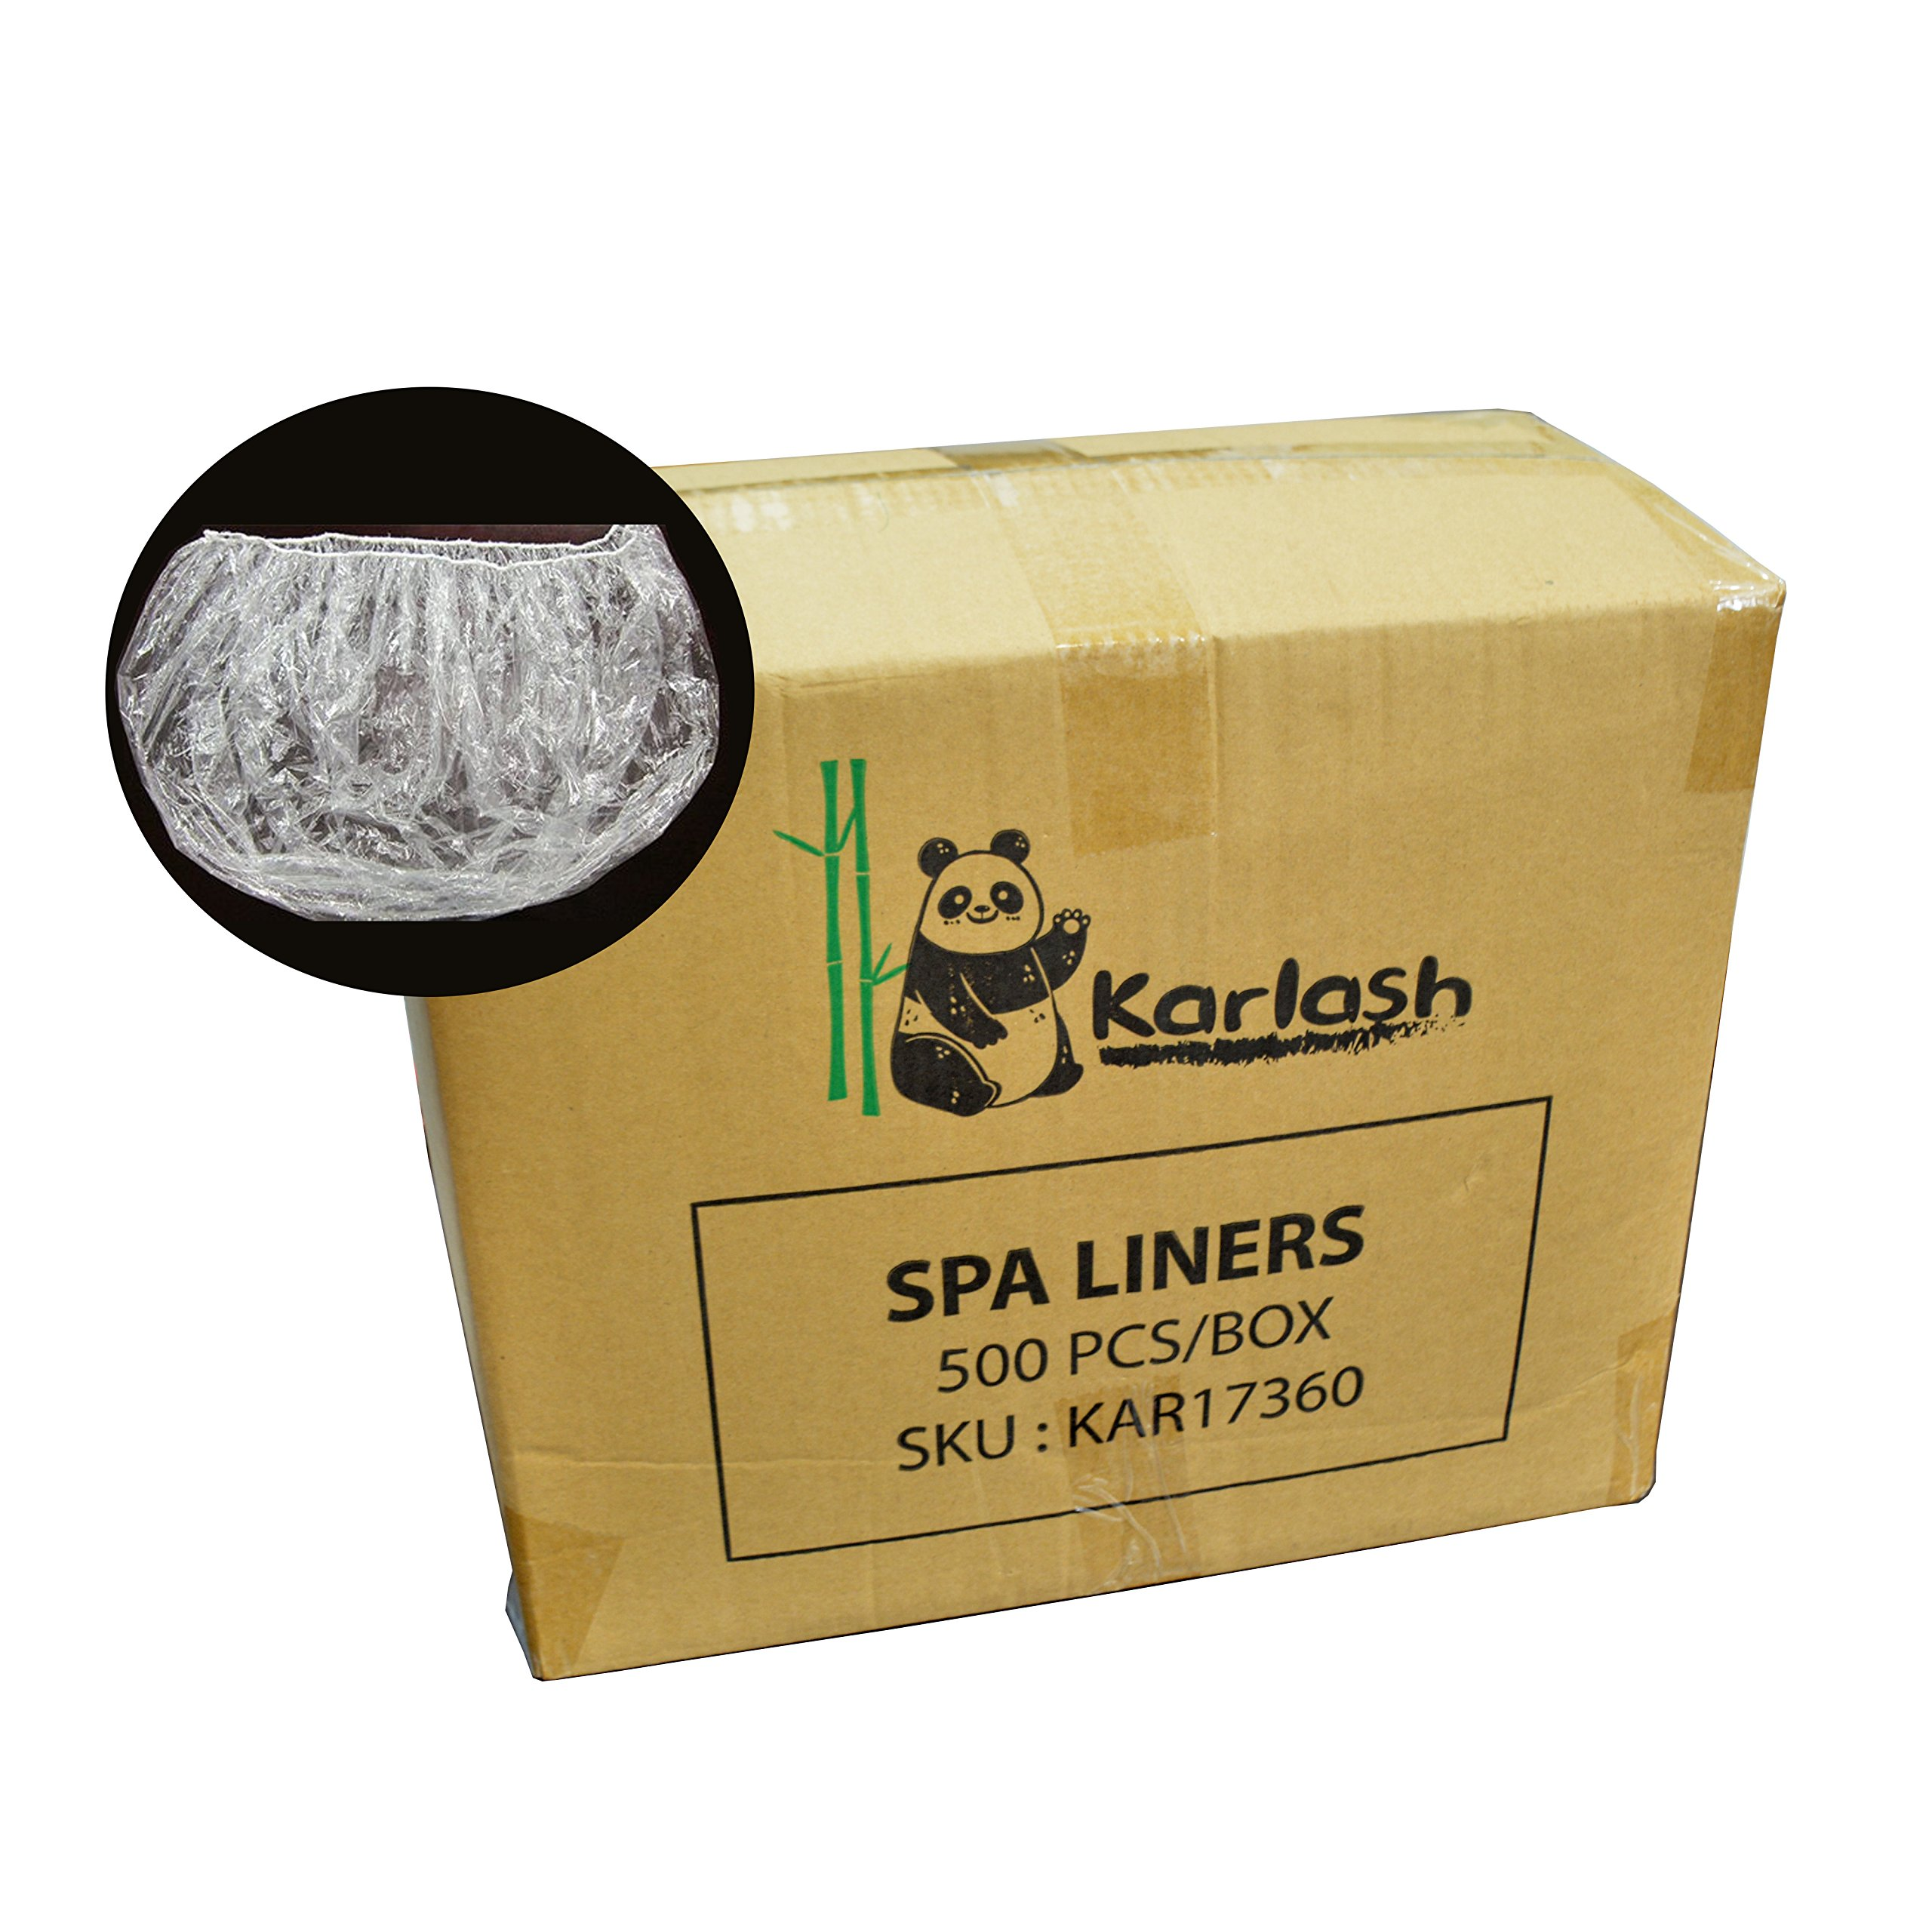 PandaSpa by Karlash Ultra Premium Spa Disposable Liners Big Size Fits all Pedicure Spa 500pcs